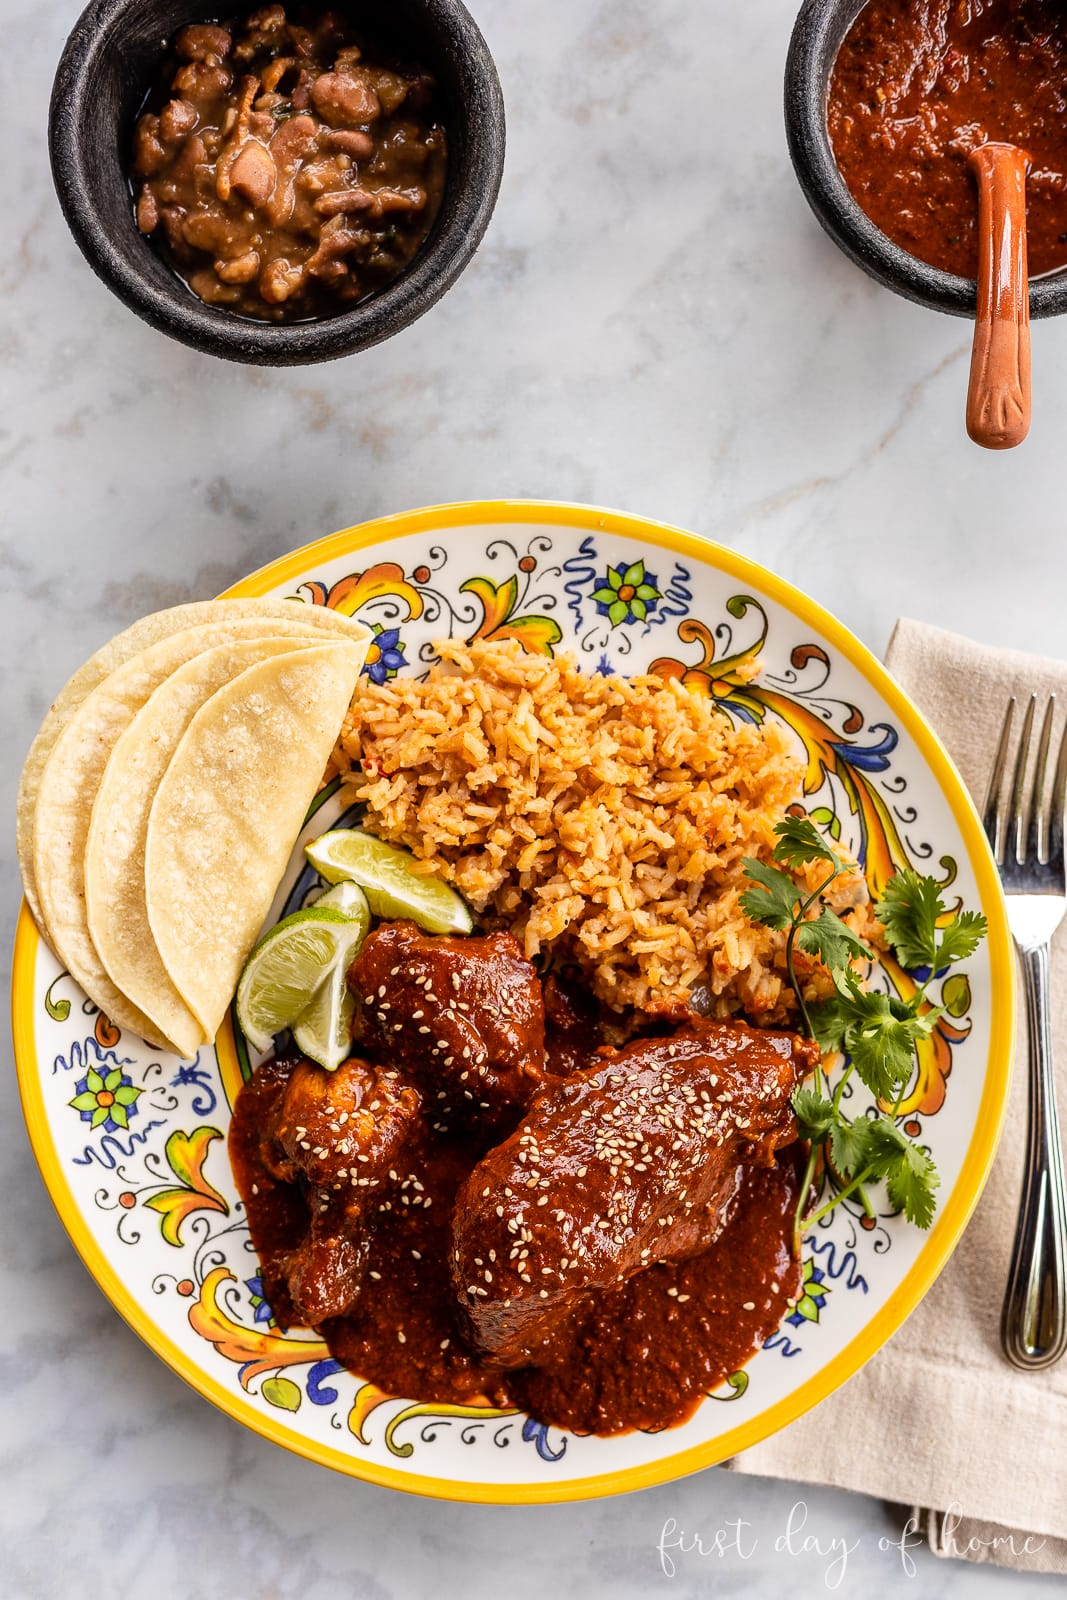 Chicken mole on plate with Mexican rice and corn tortillas with side of charro beans and salsa